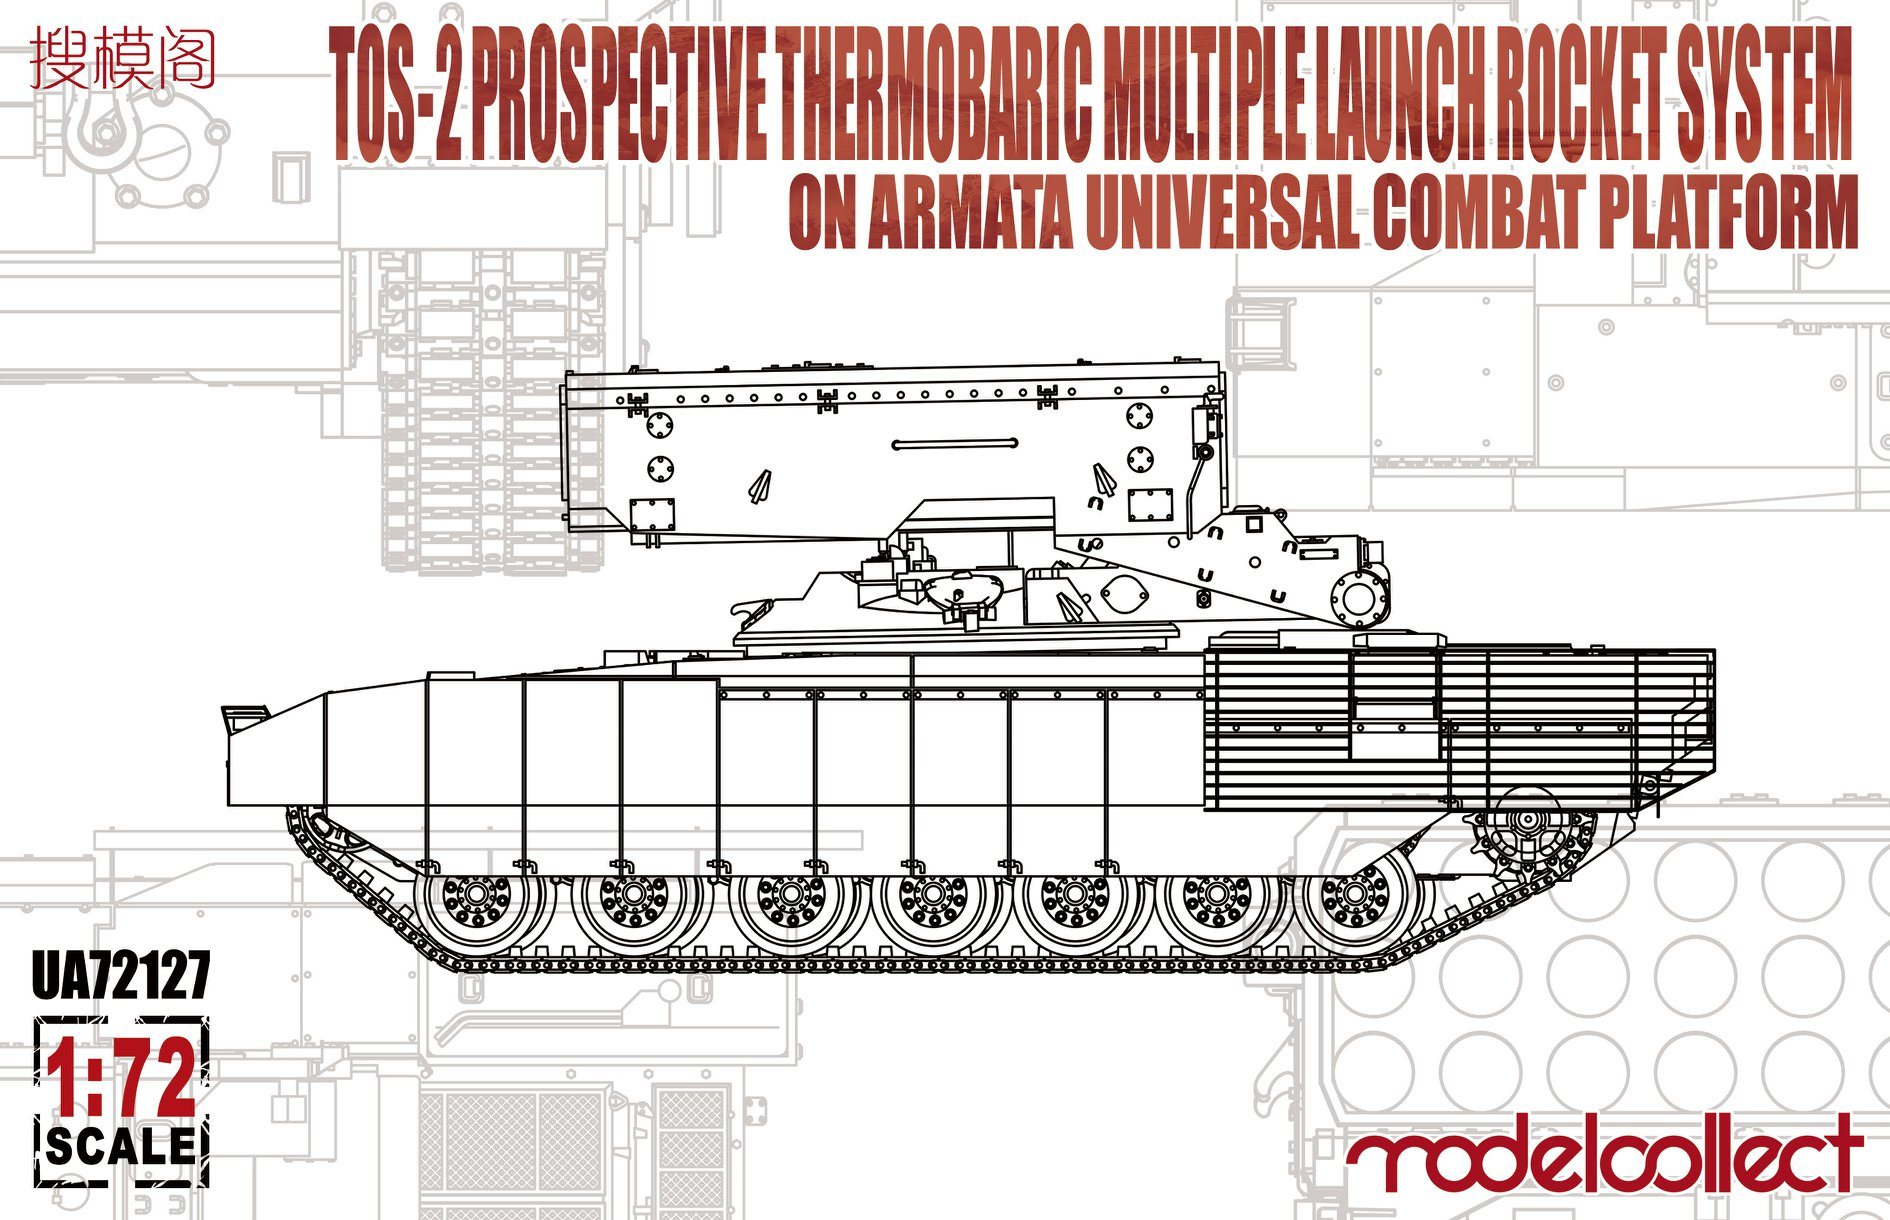 TOS-2 Prospective Thermobaric Rocket System on Armata